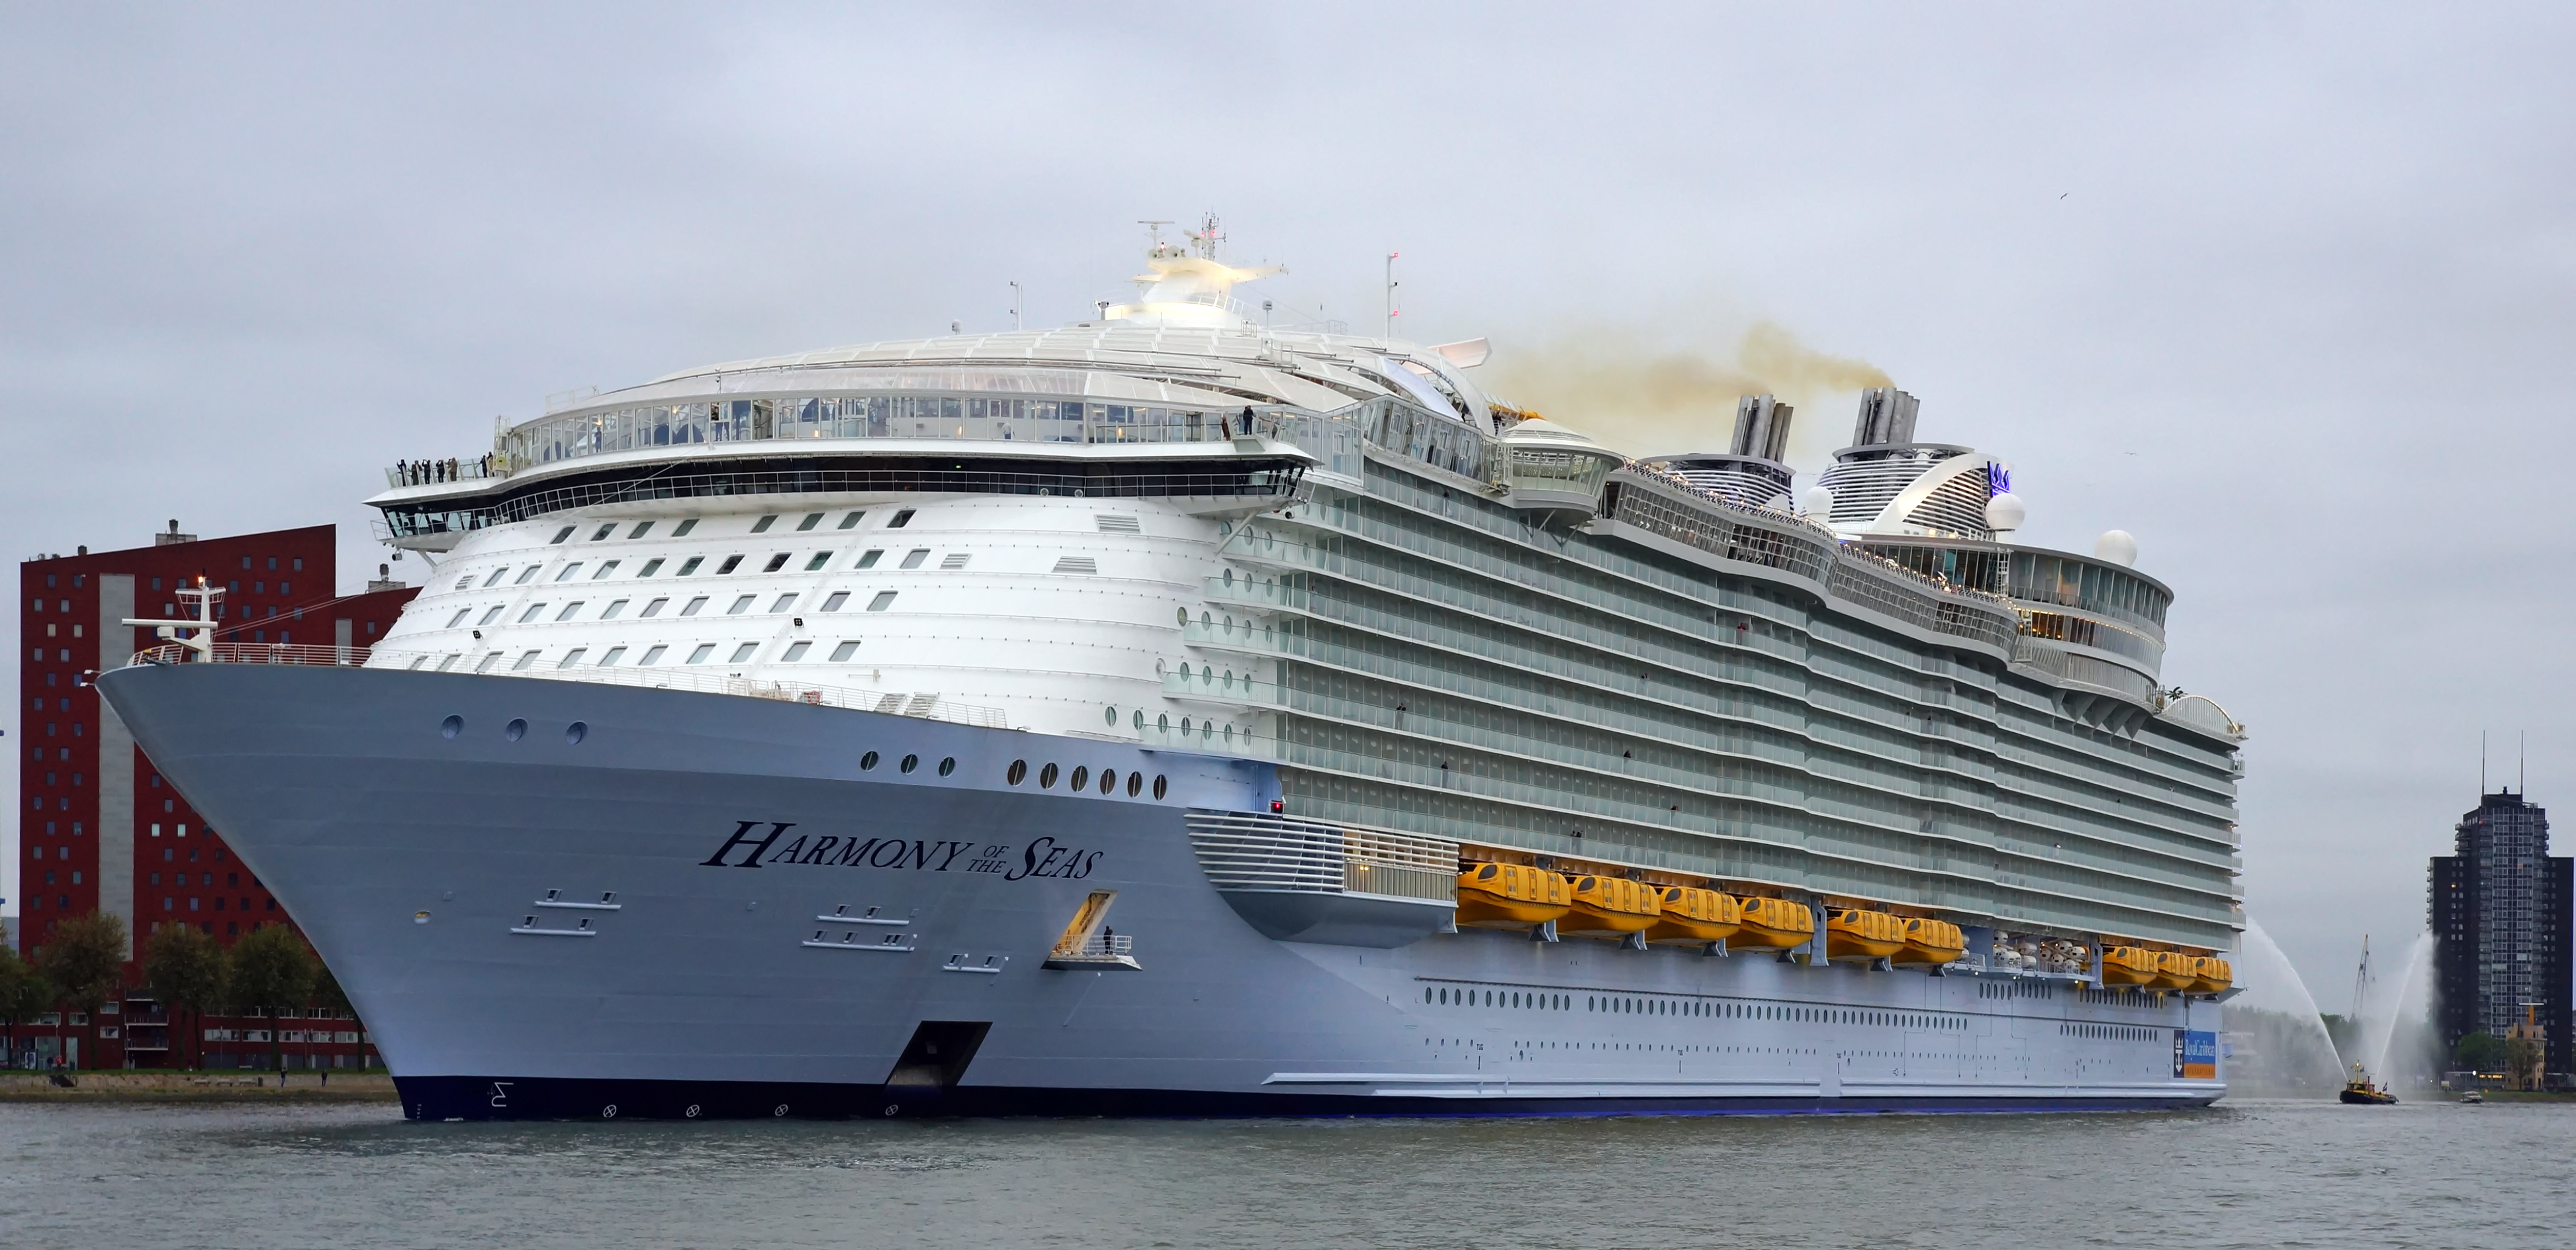 fileharmony of the seas ship 2016 001jpg wikimedia